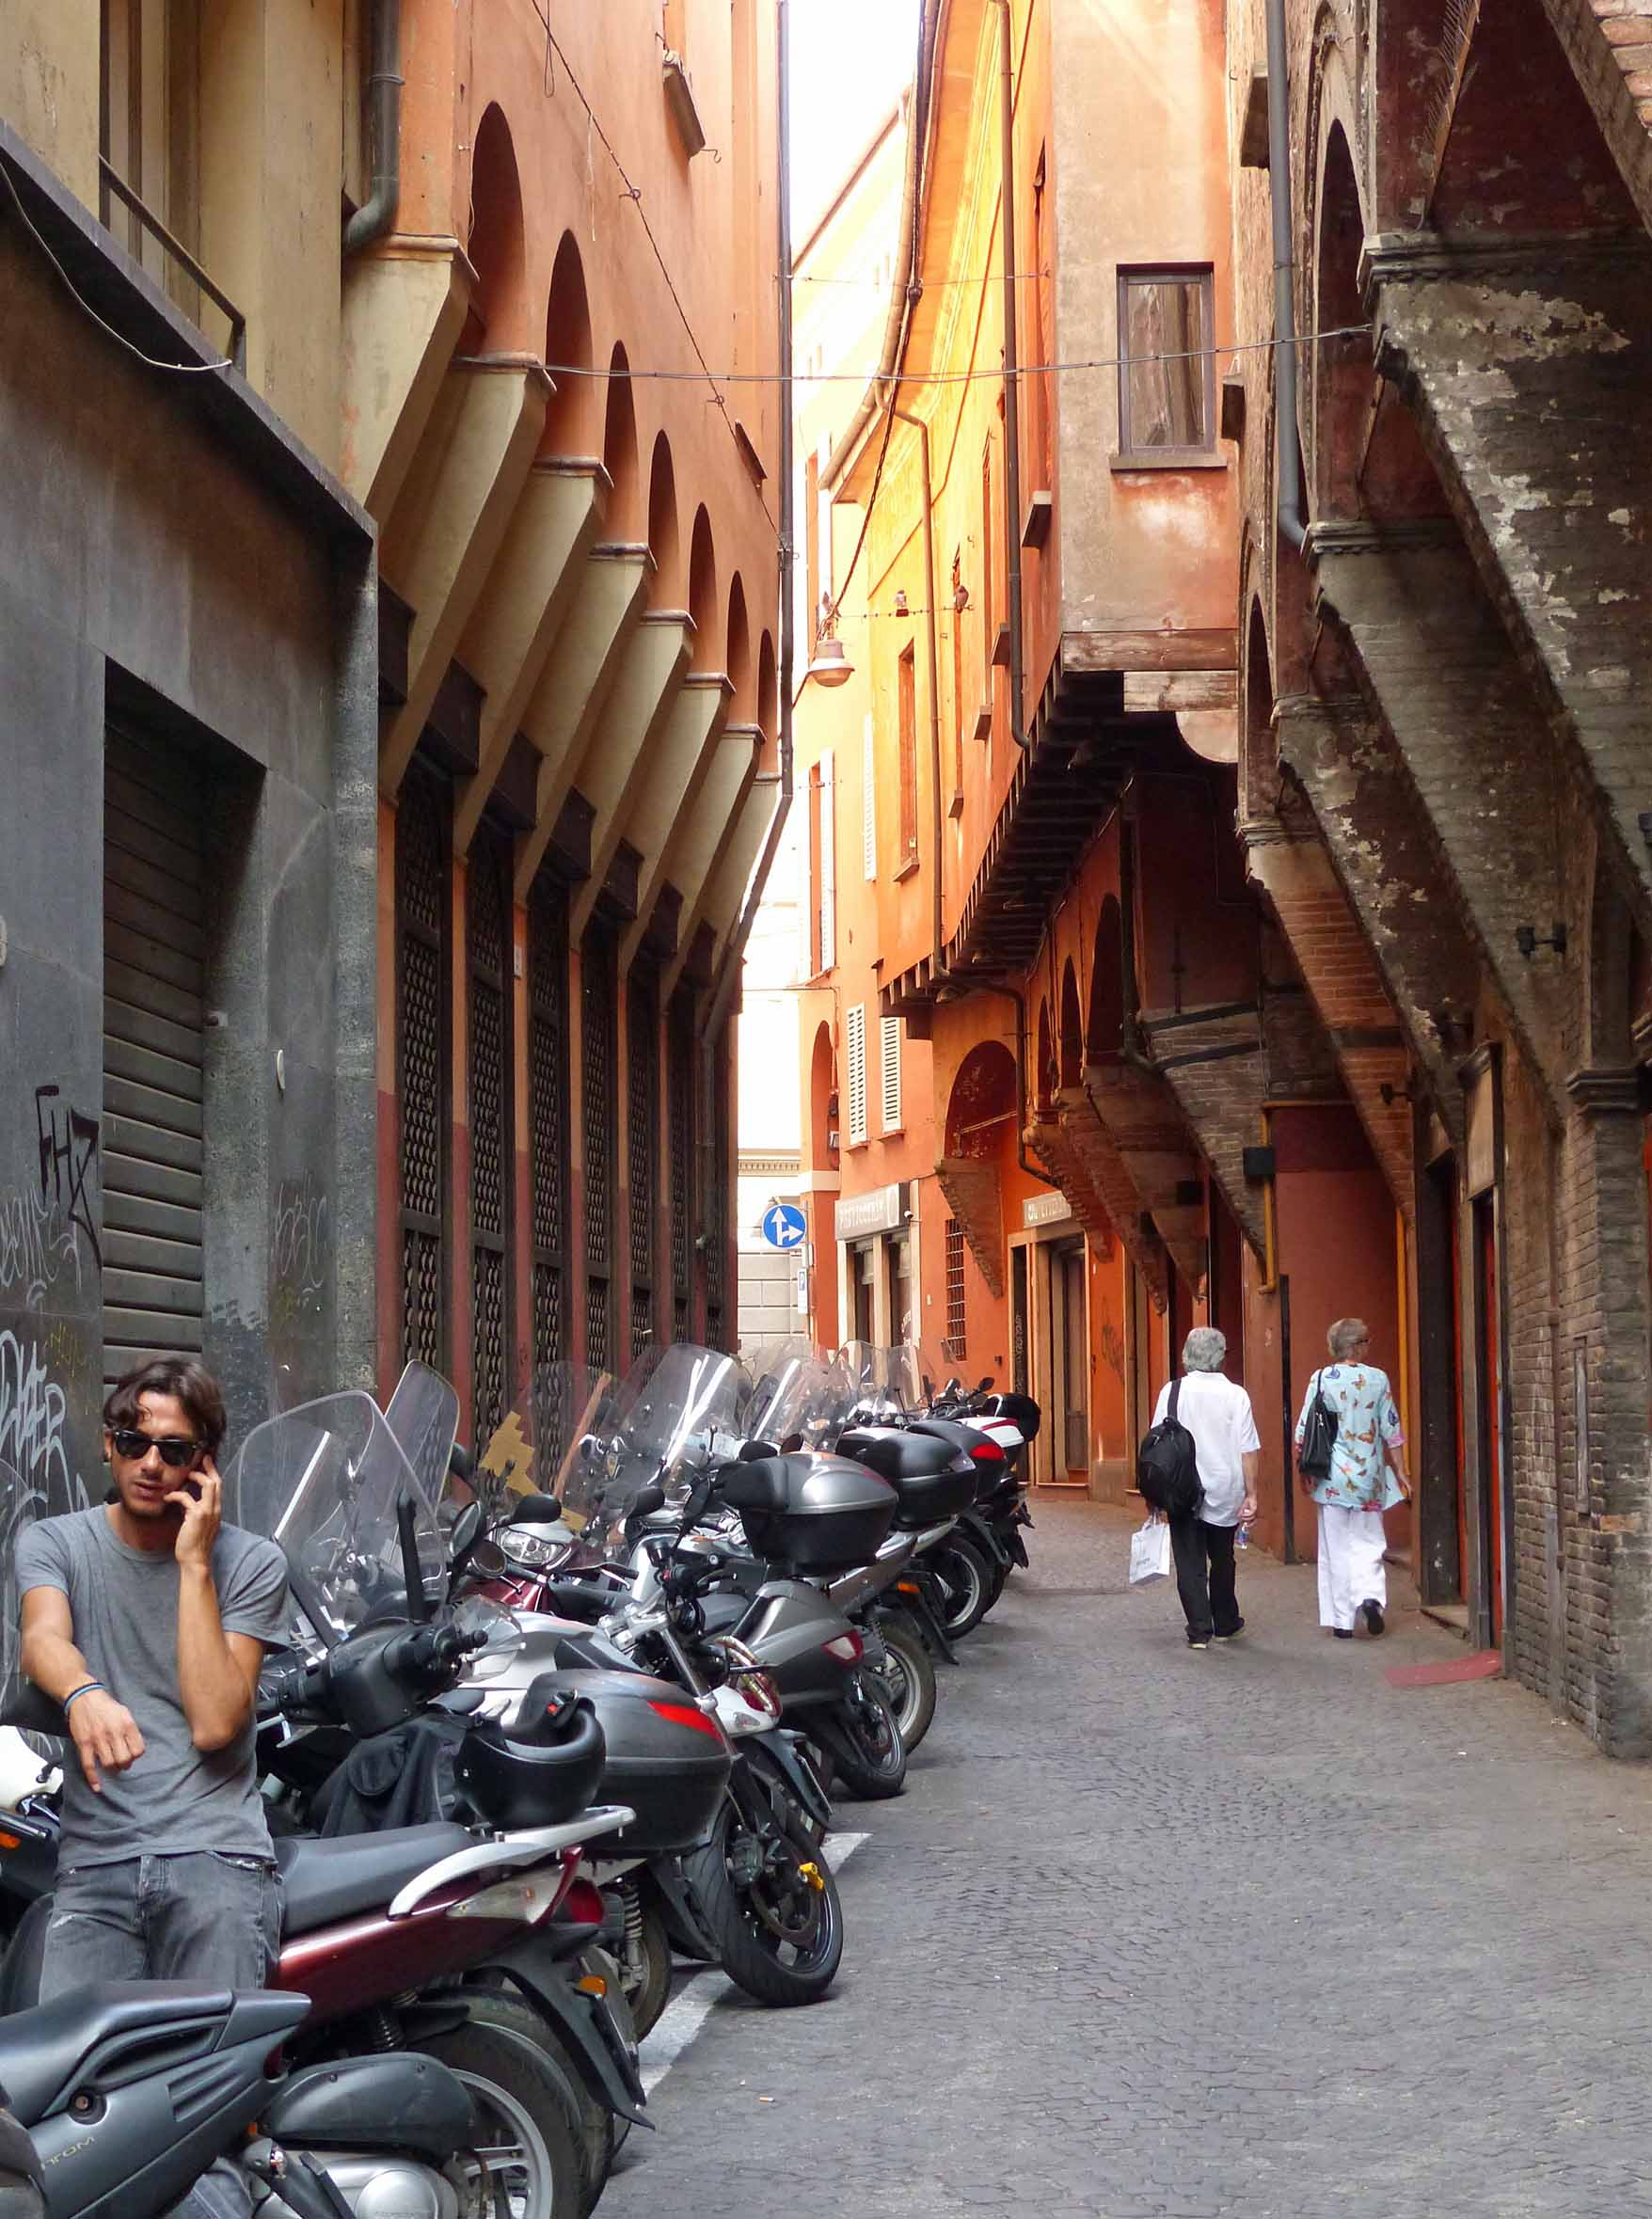 Narrow street with parked mopeds